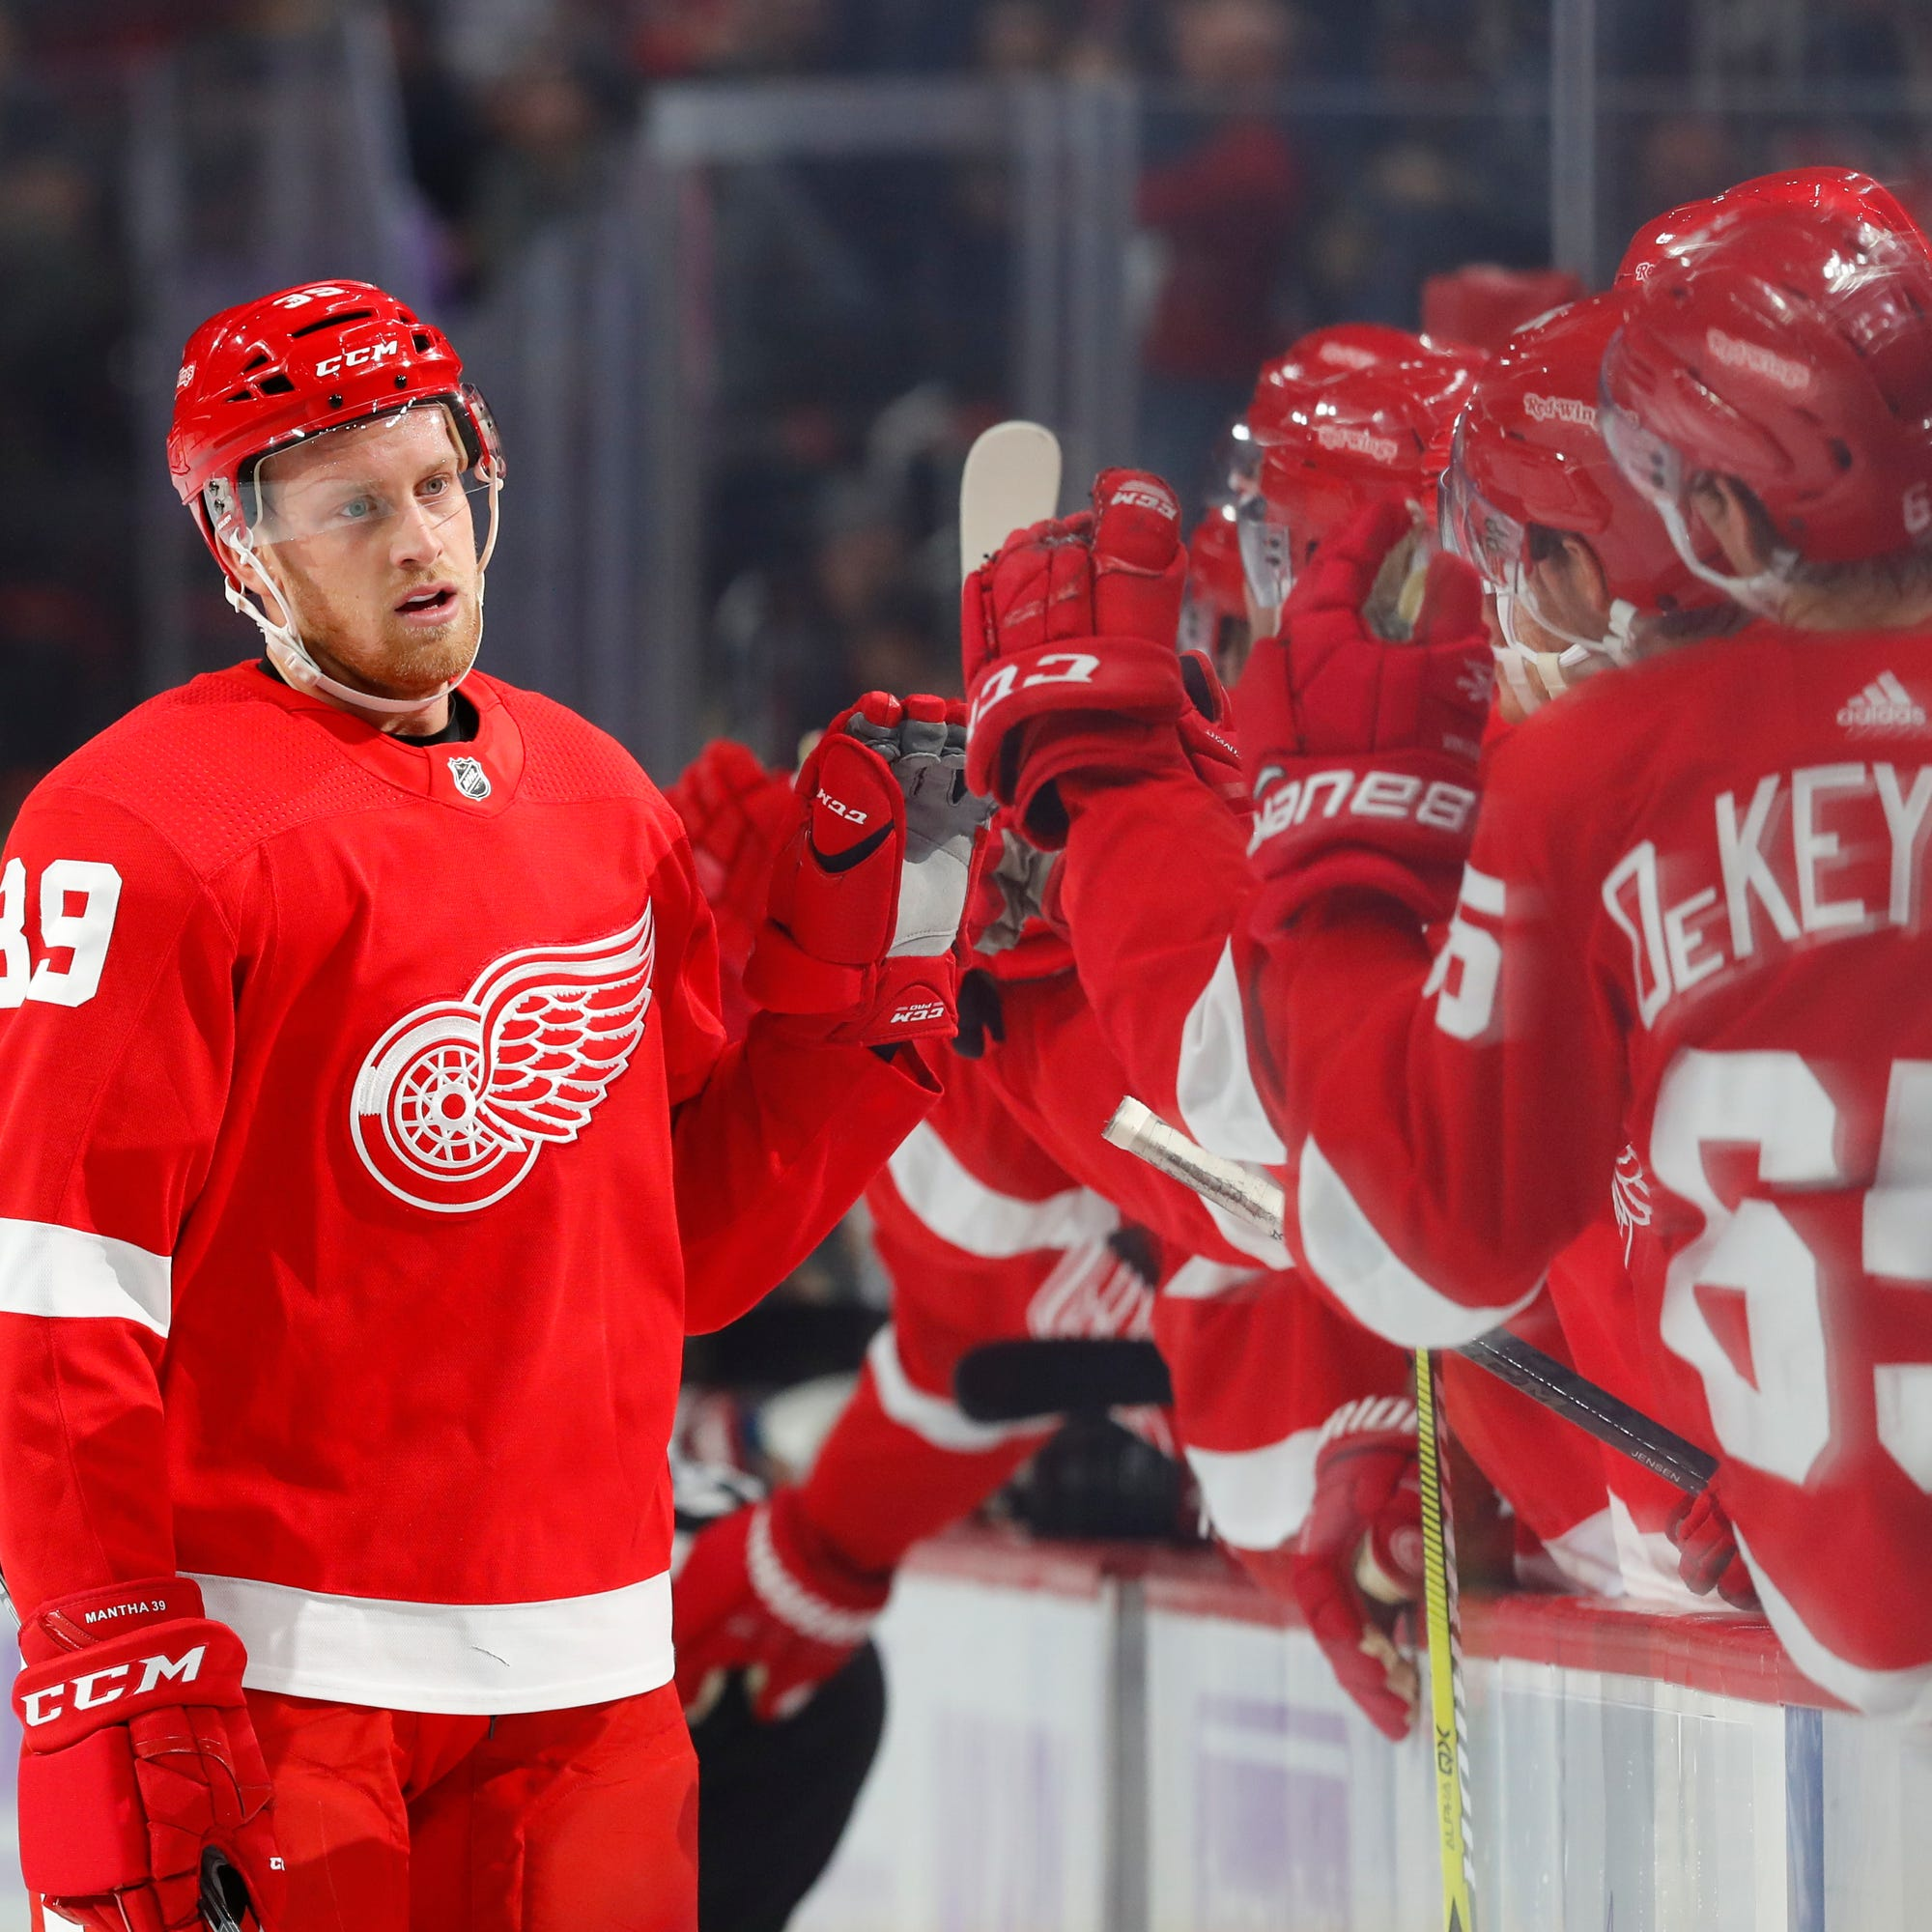 Detroit Red Wings' Anthony Mantha celebrates his goal against the Arizona Coyotes in the first period of an NHL hockey game, Tuesday, Nov. 13, 2018, in Detroit. (AP Photo/Paul Sancya)